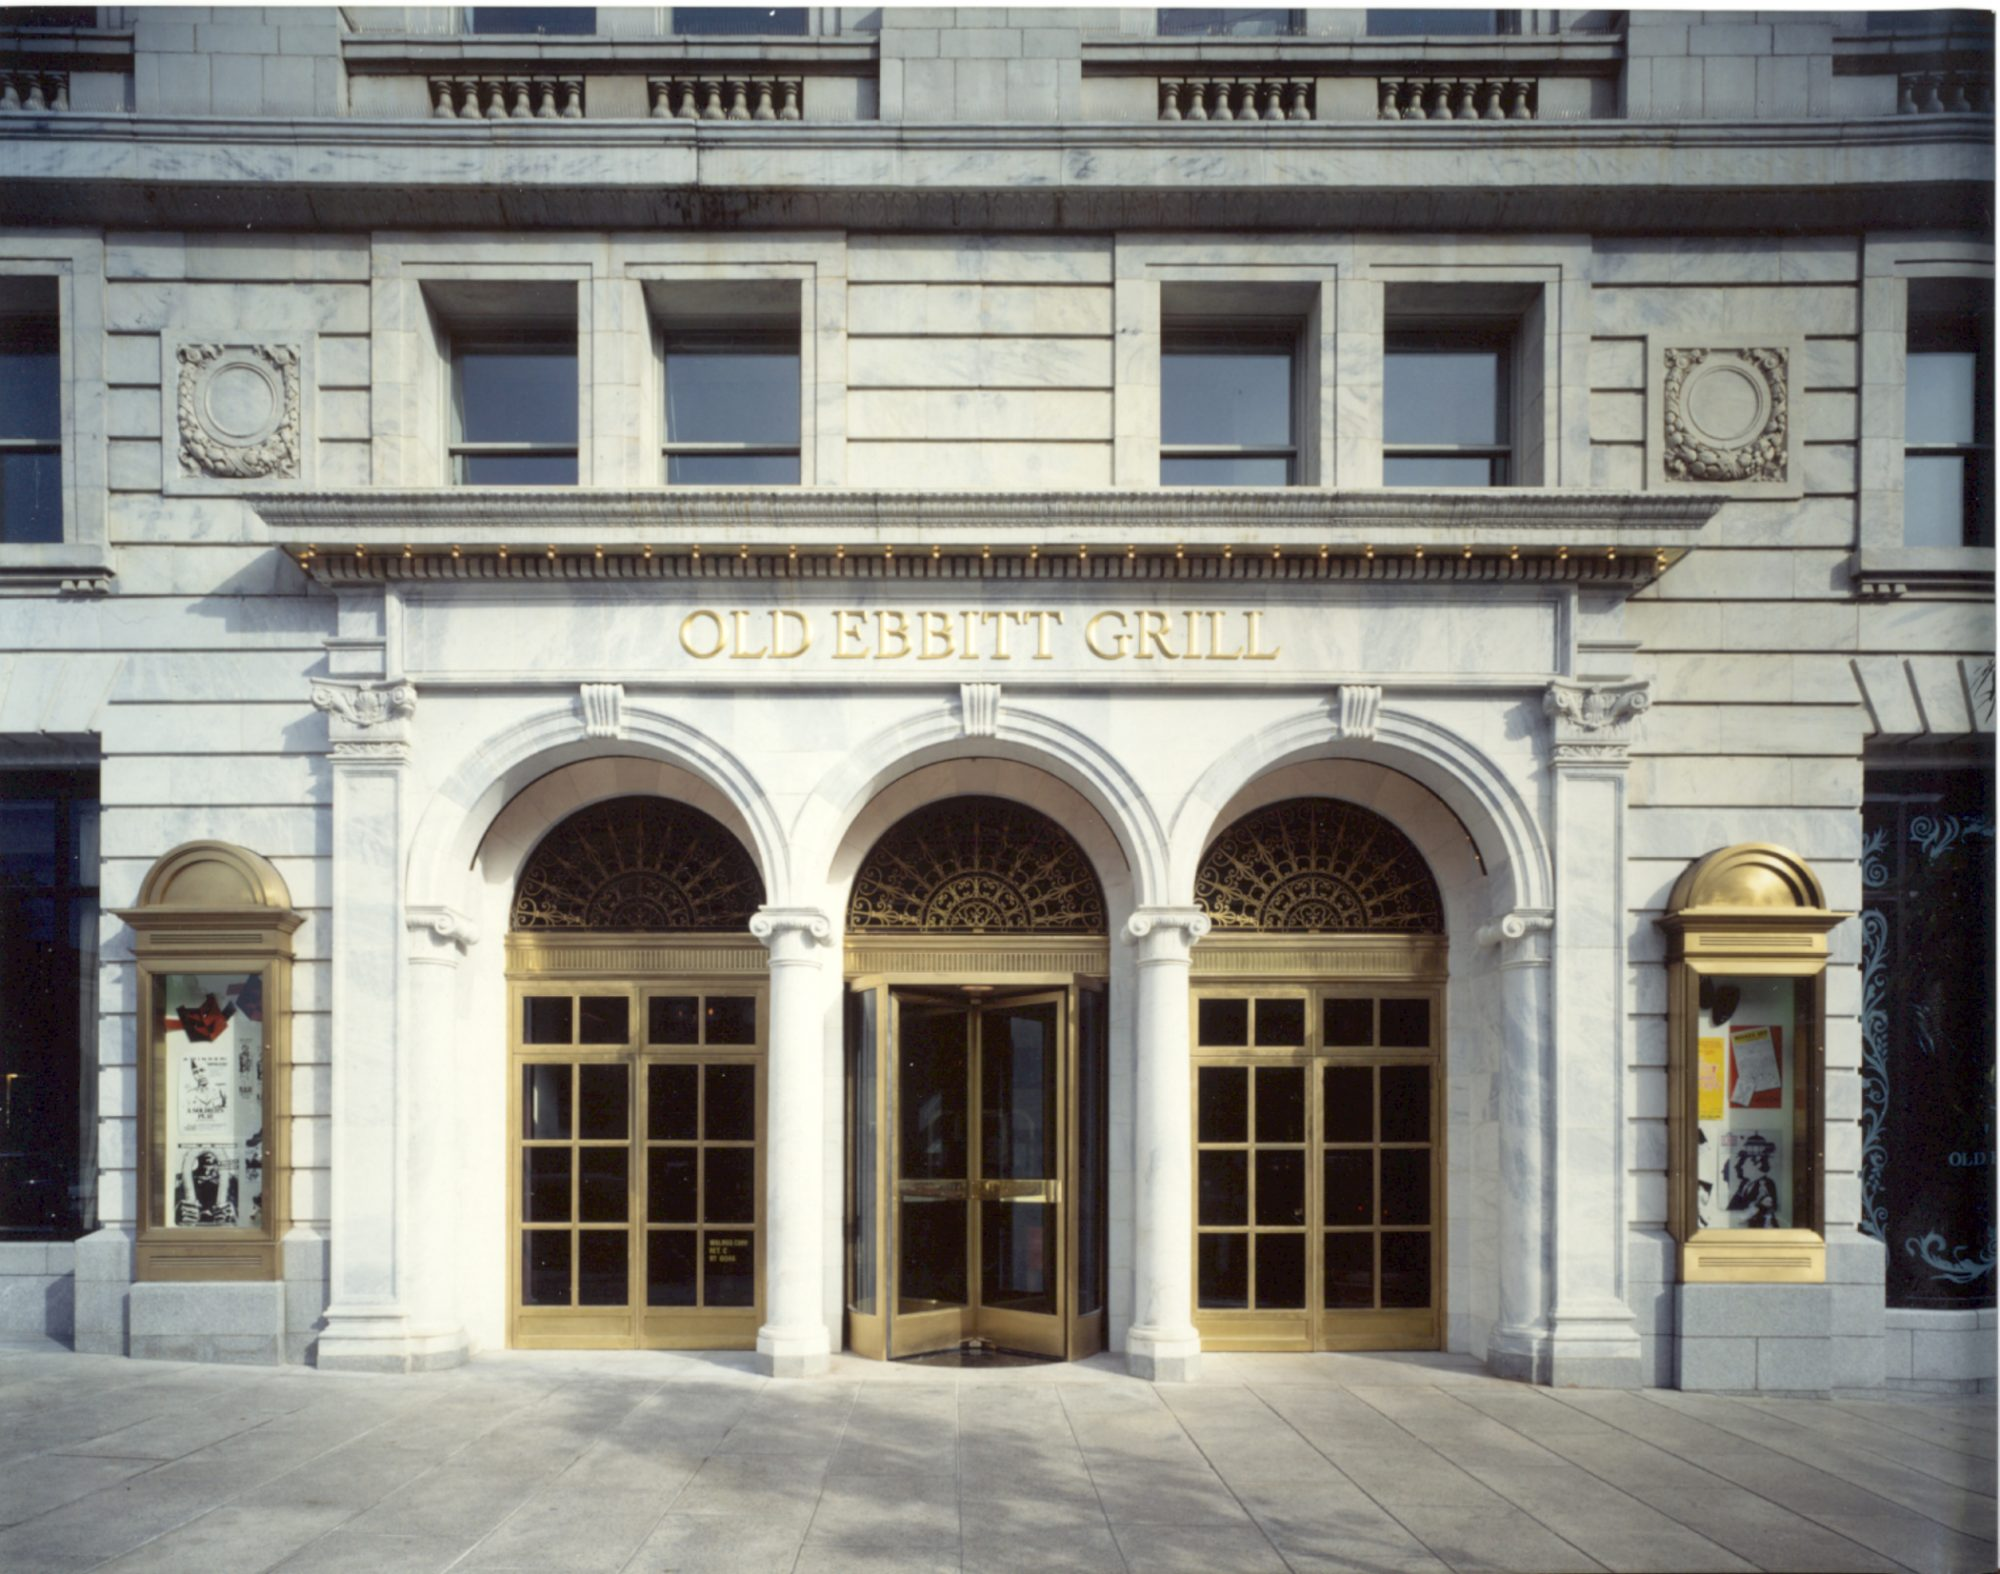 Washington, D.C.: Old Ebbitt Grill